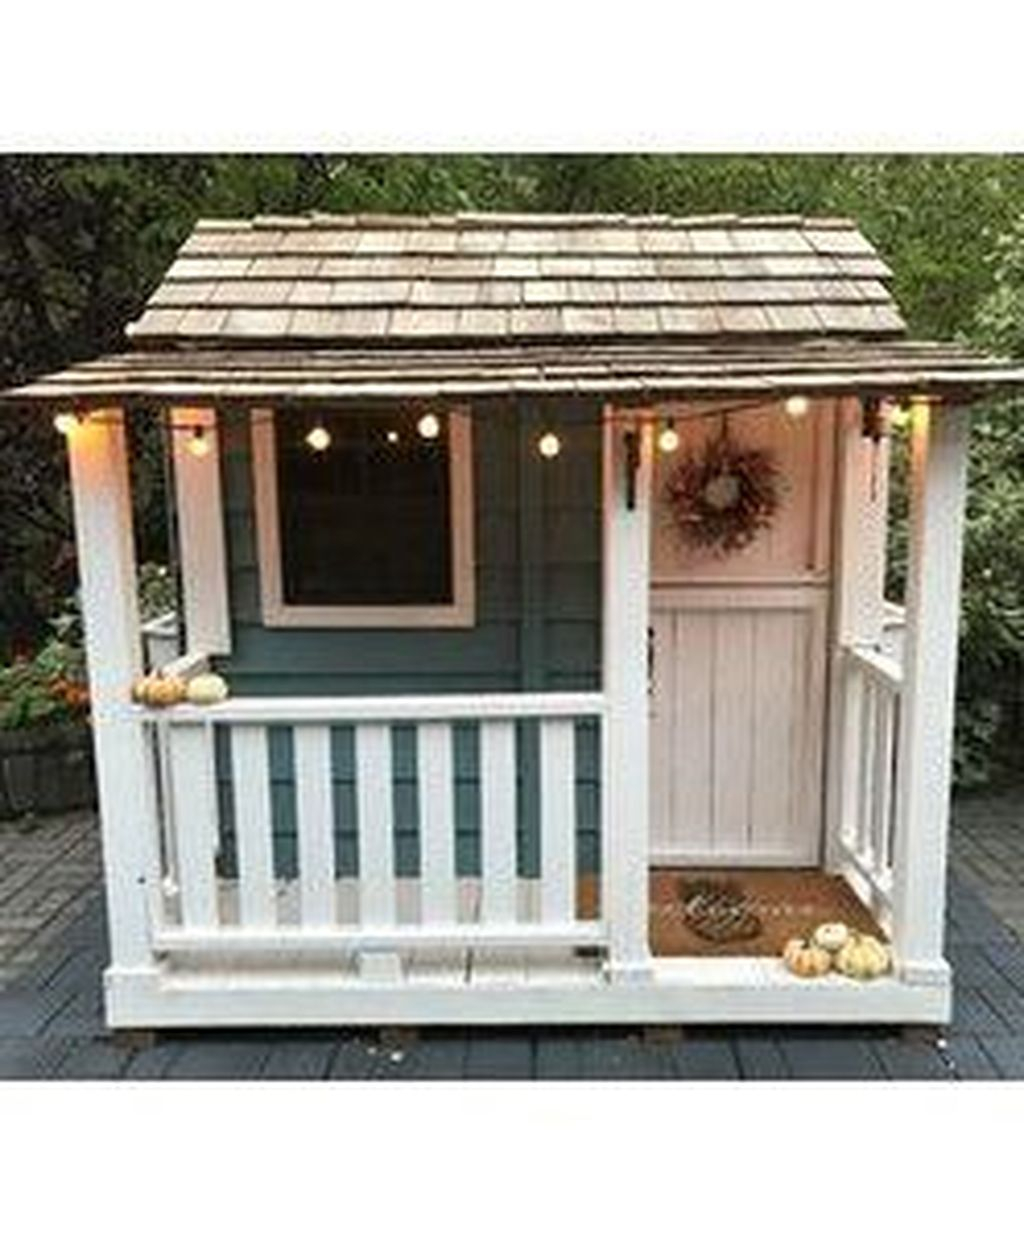 Attractive Outdoor Kids Playhouses Design Ideas To Try Right Now 13